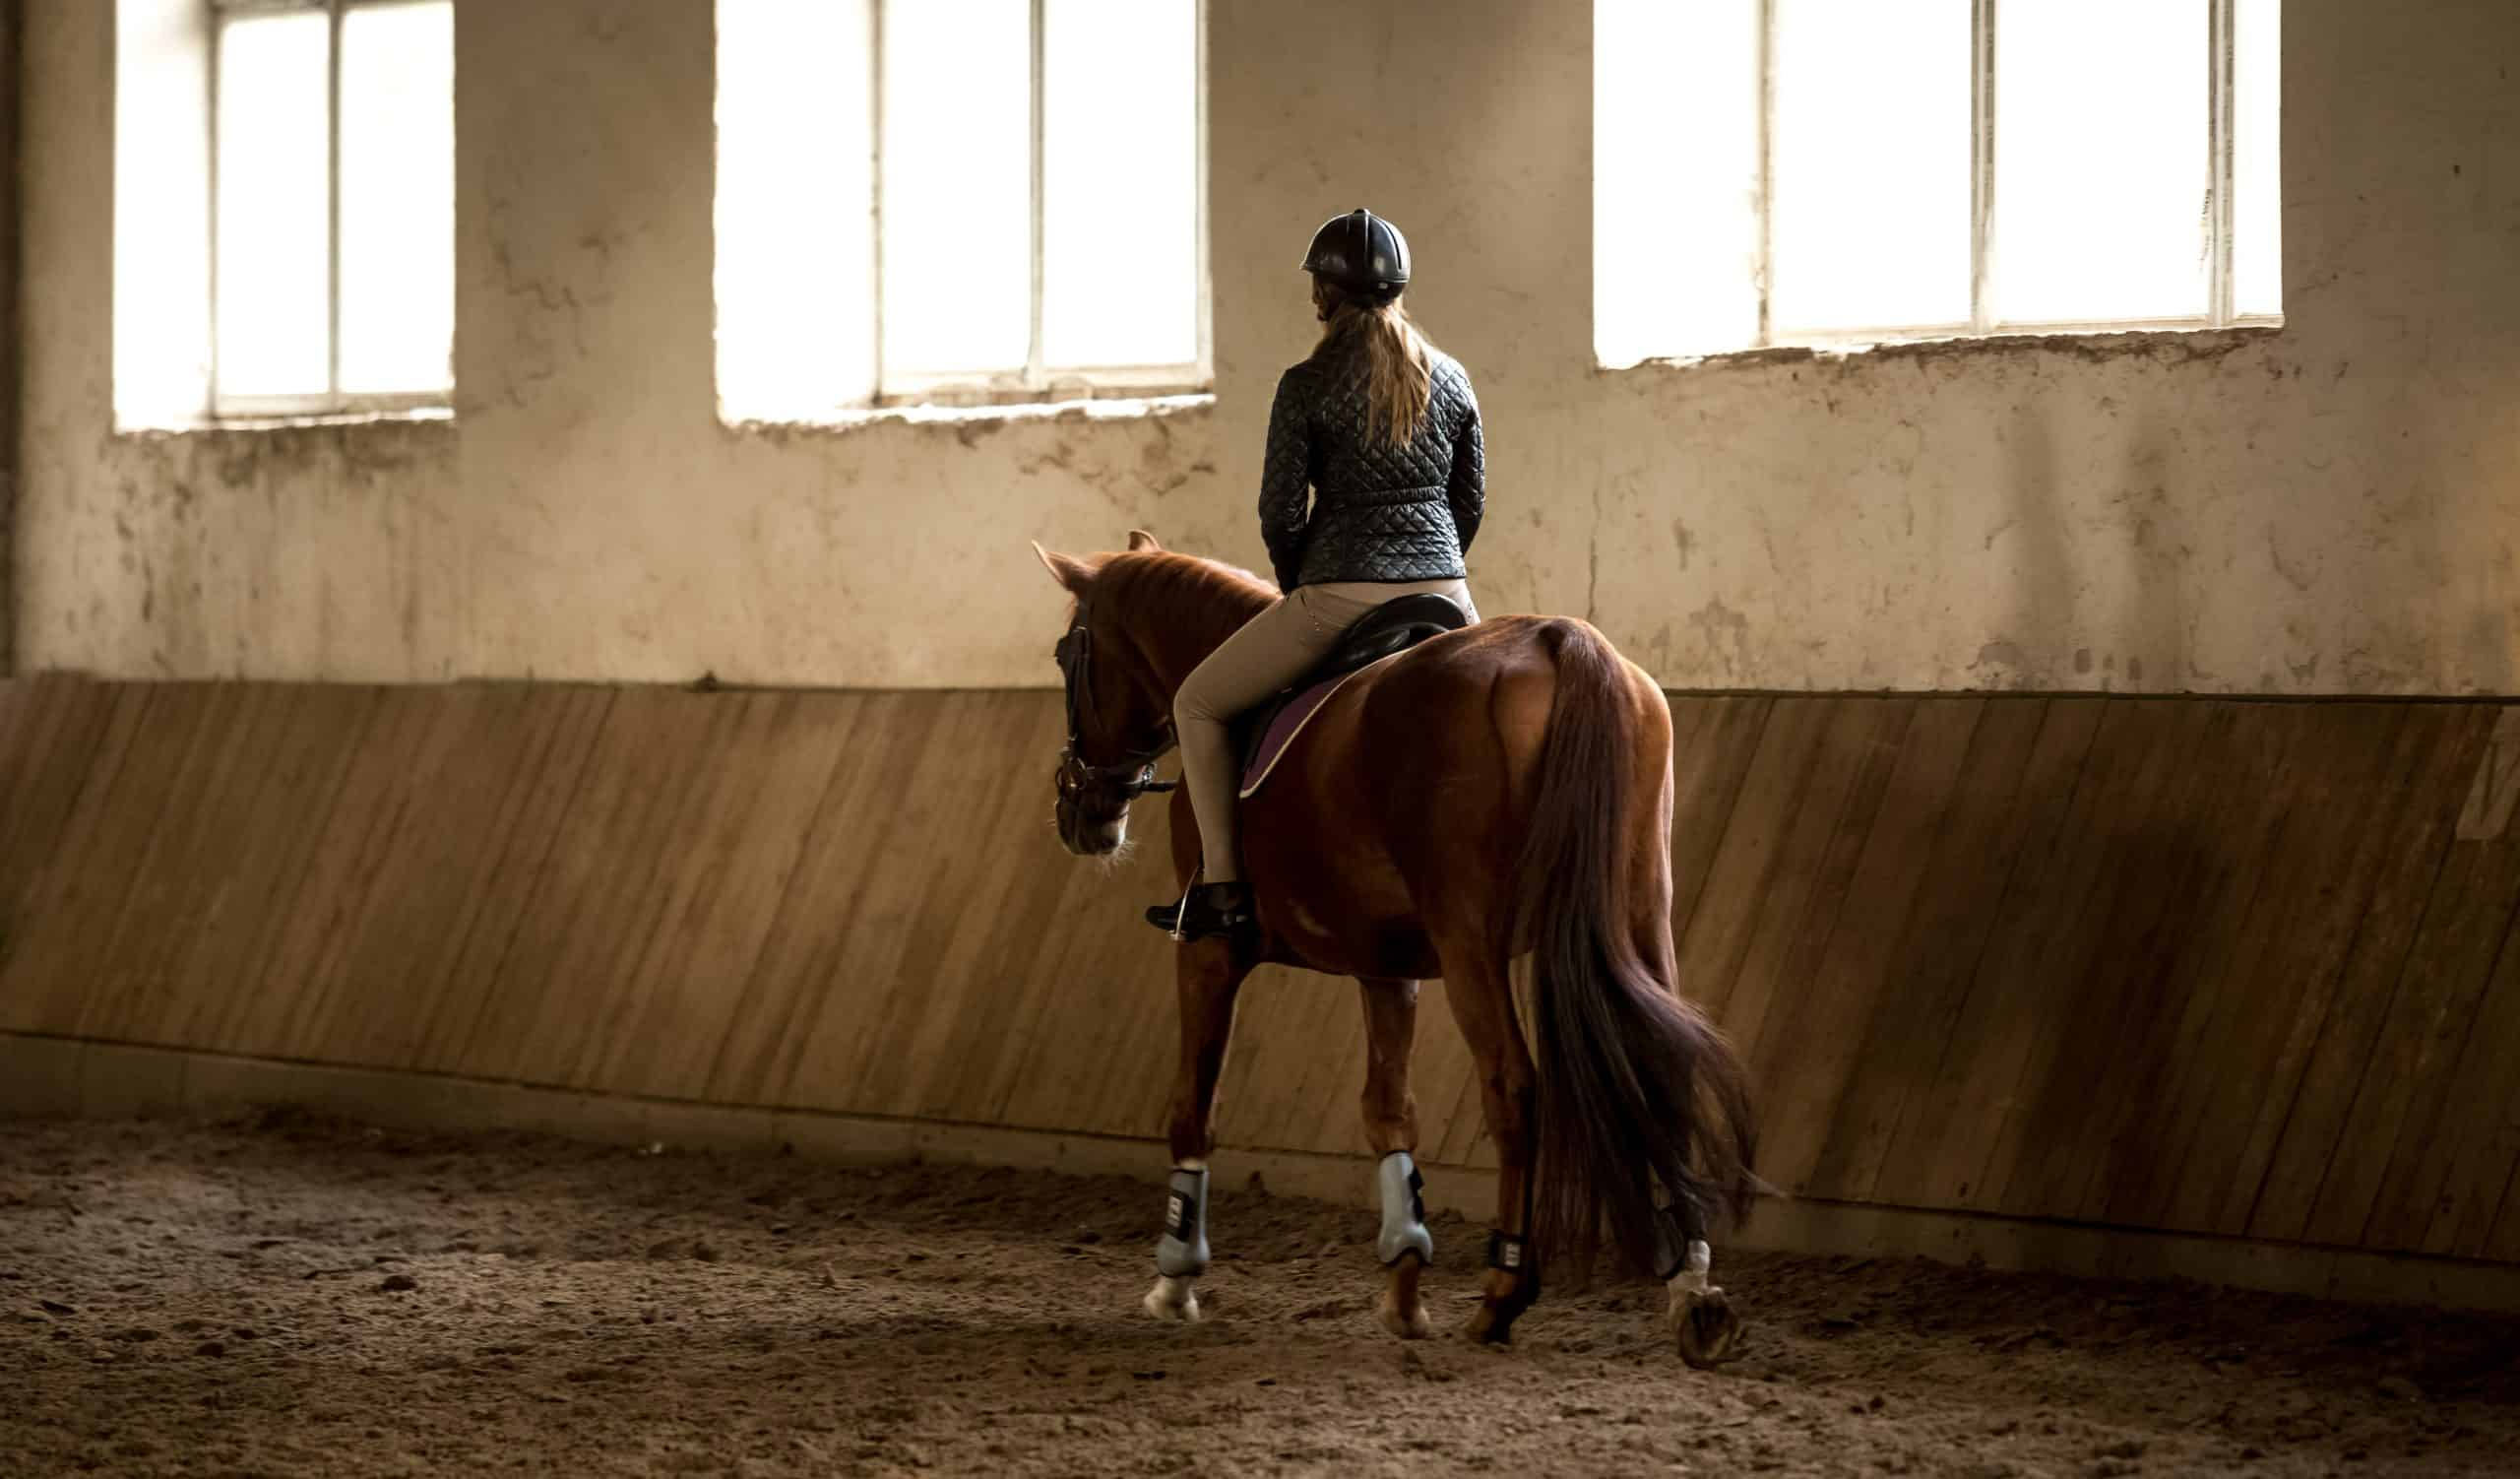 Photo from back of woman doing horseback riding in manege